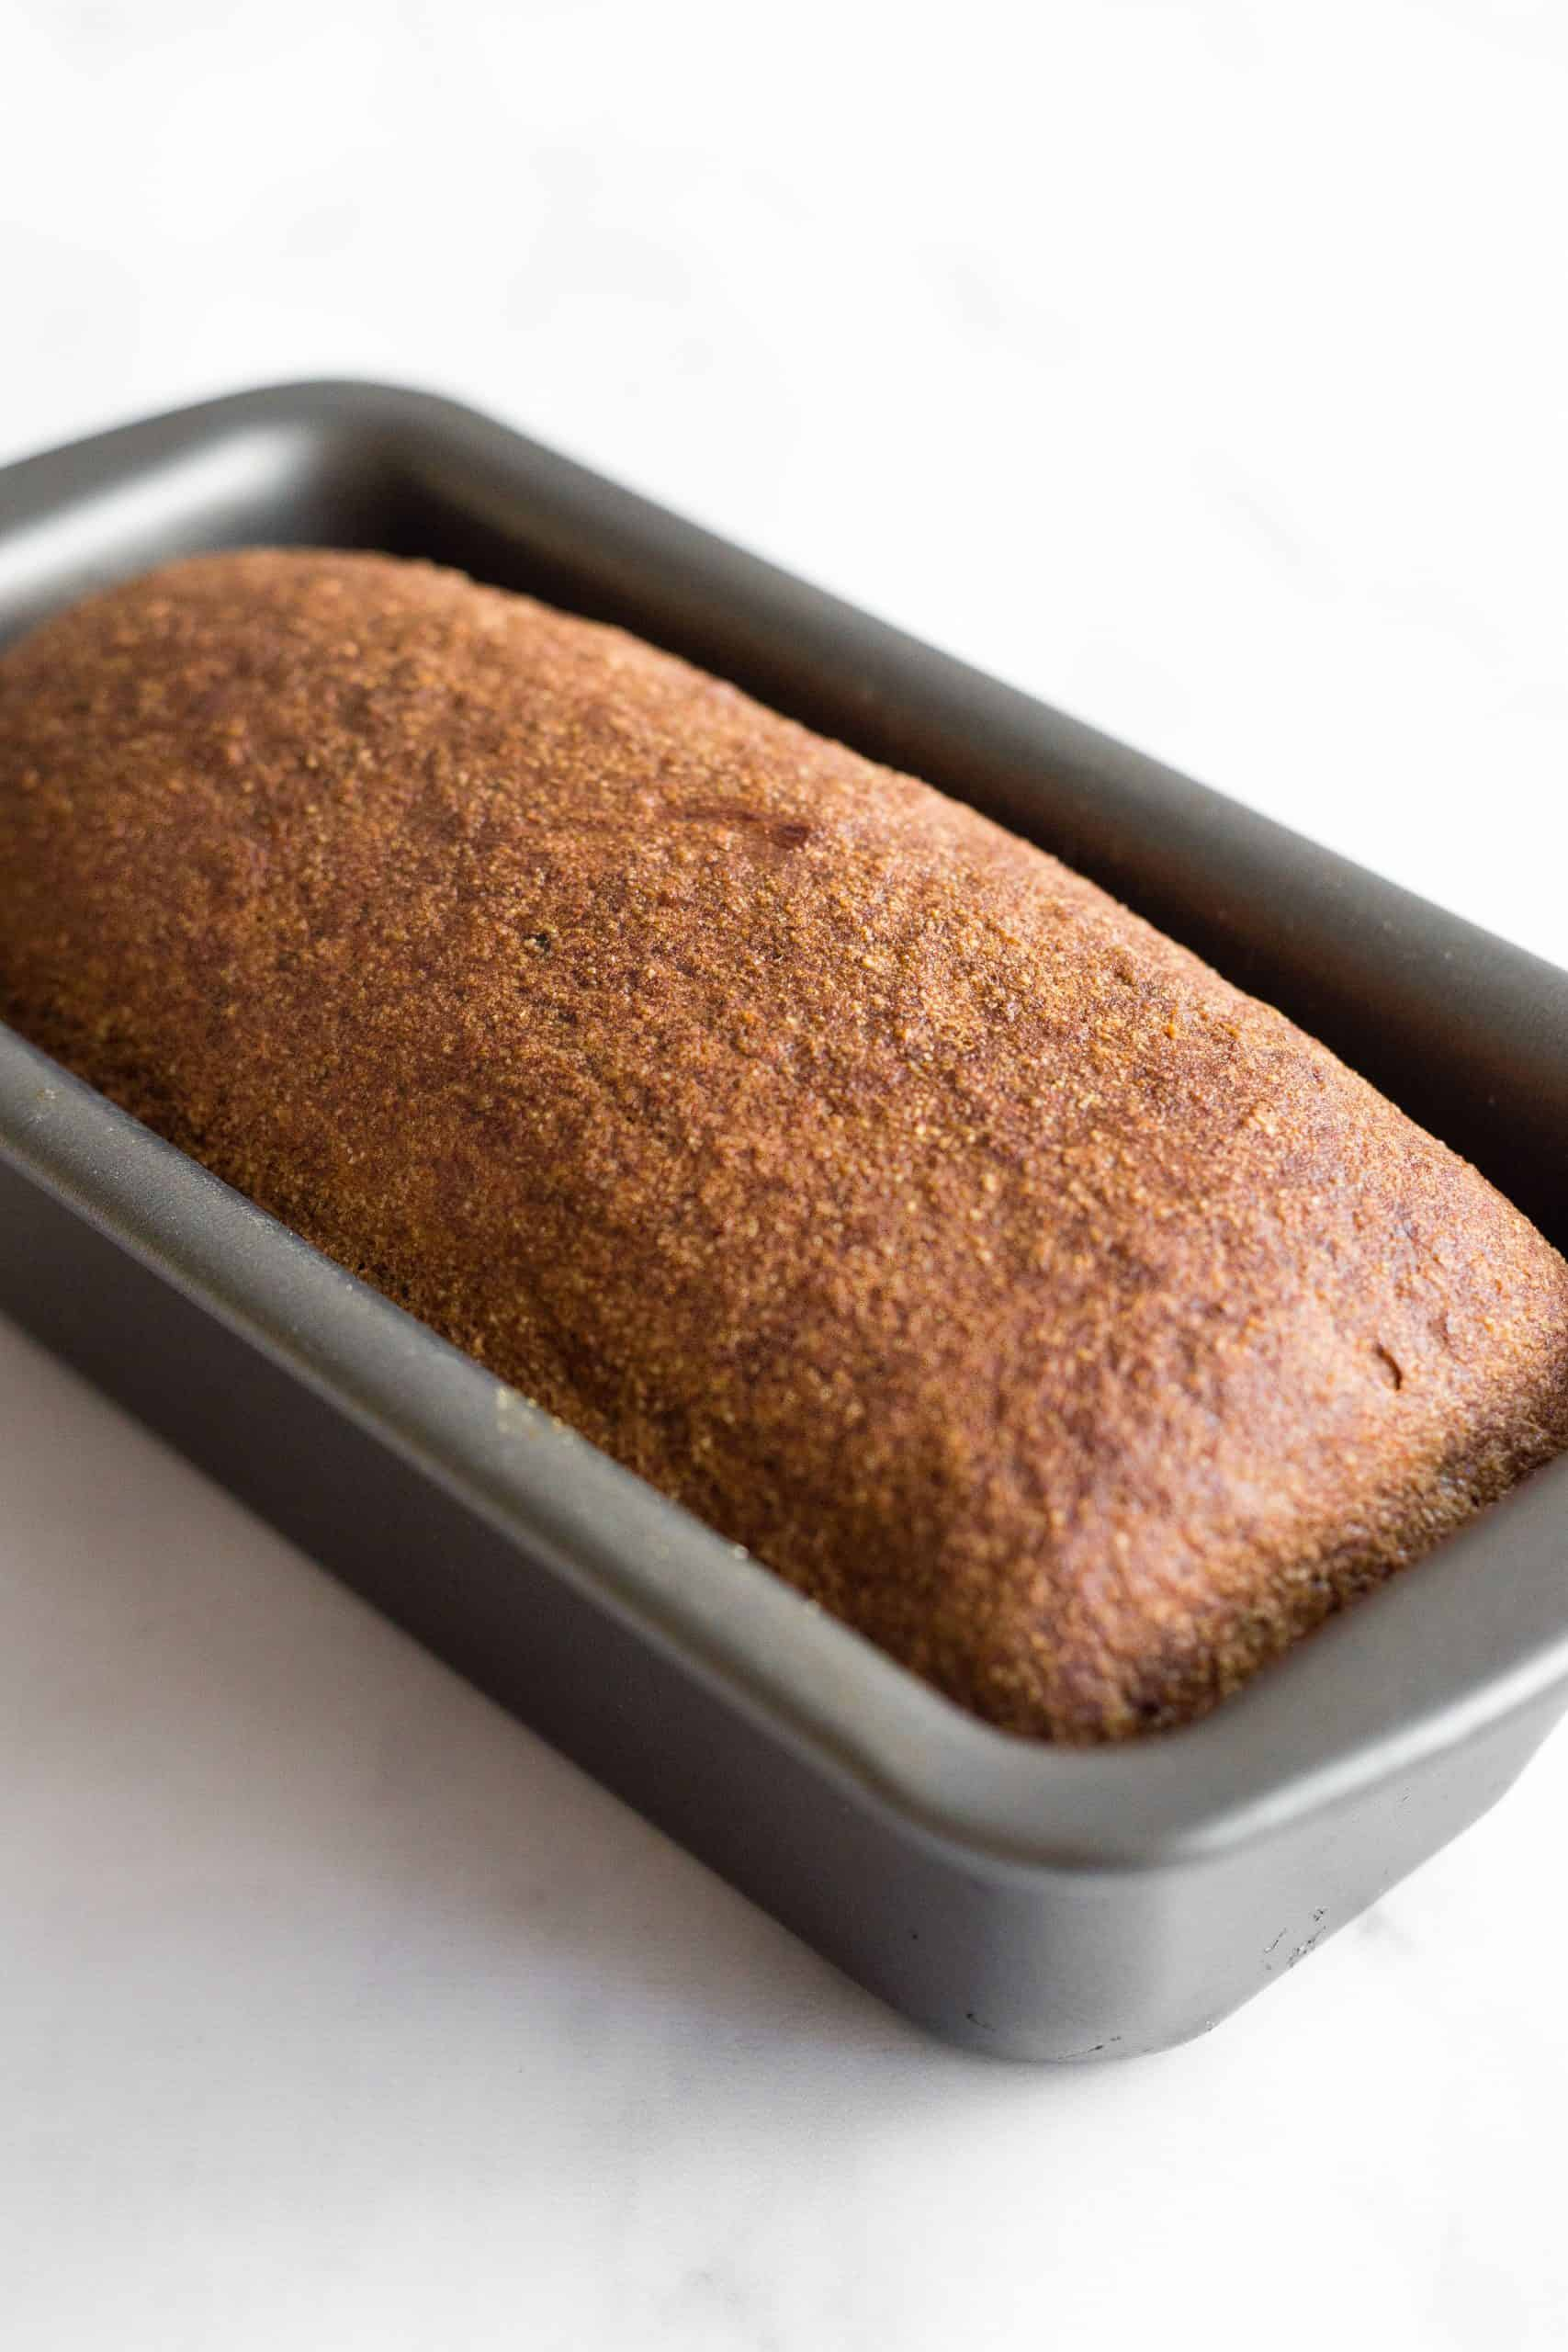 A just-baked loaf of brown bread in a metal pan.